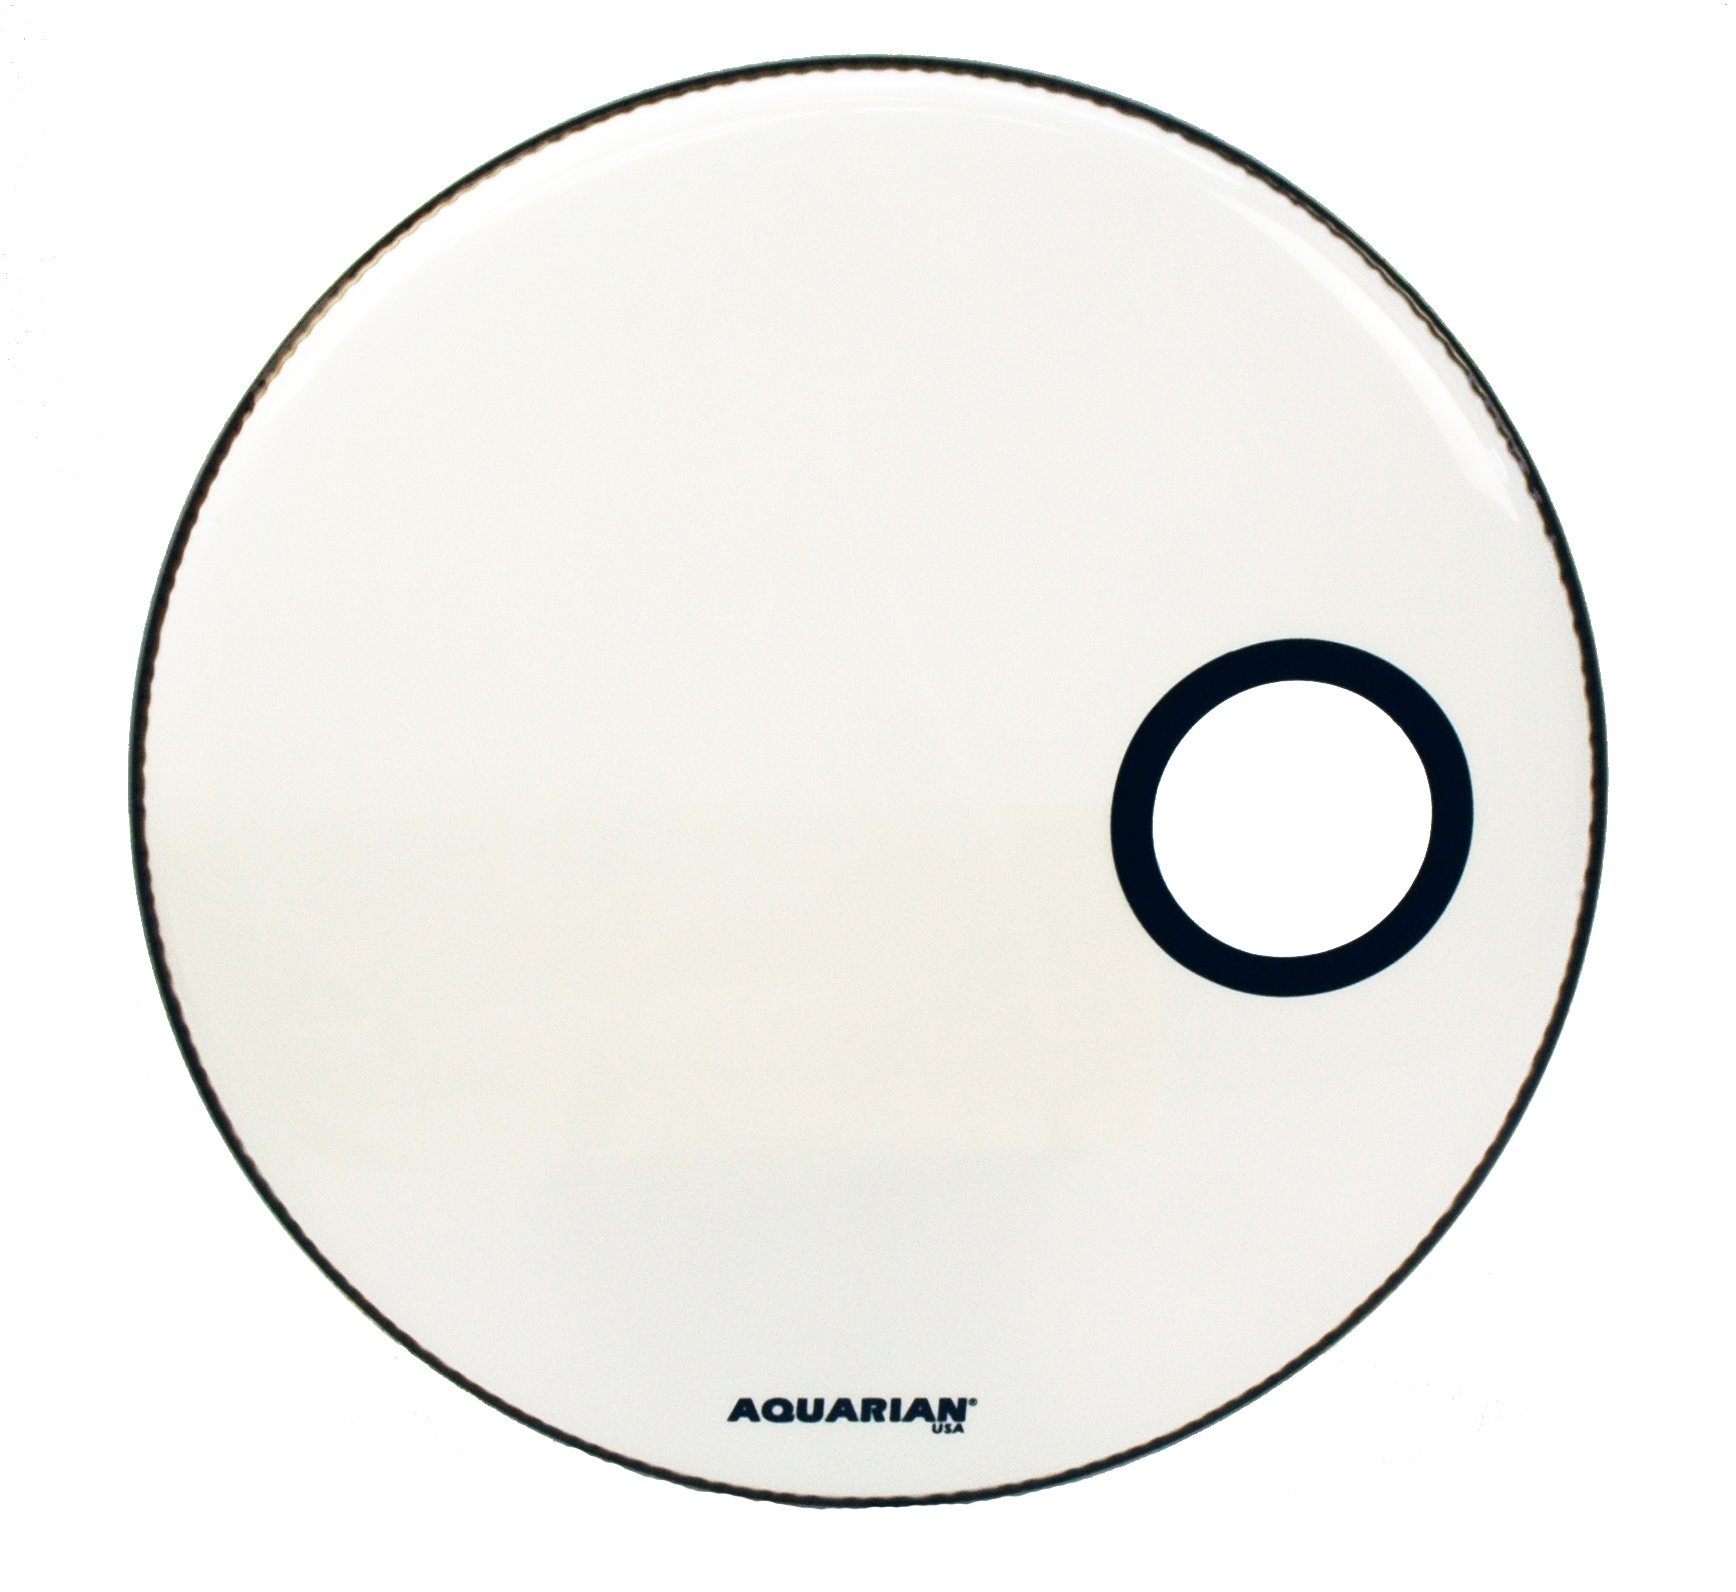 Aquarian Drumheads SMPTCC18BWH Offset Ported Bass 18-inch Bass Drum Head, goss white by Aquarian Drumheads